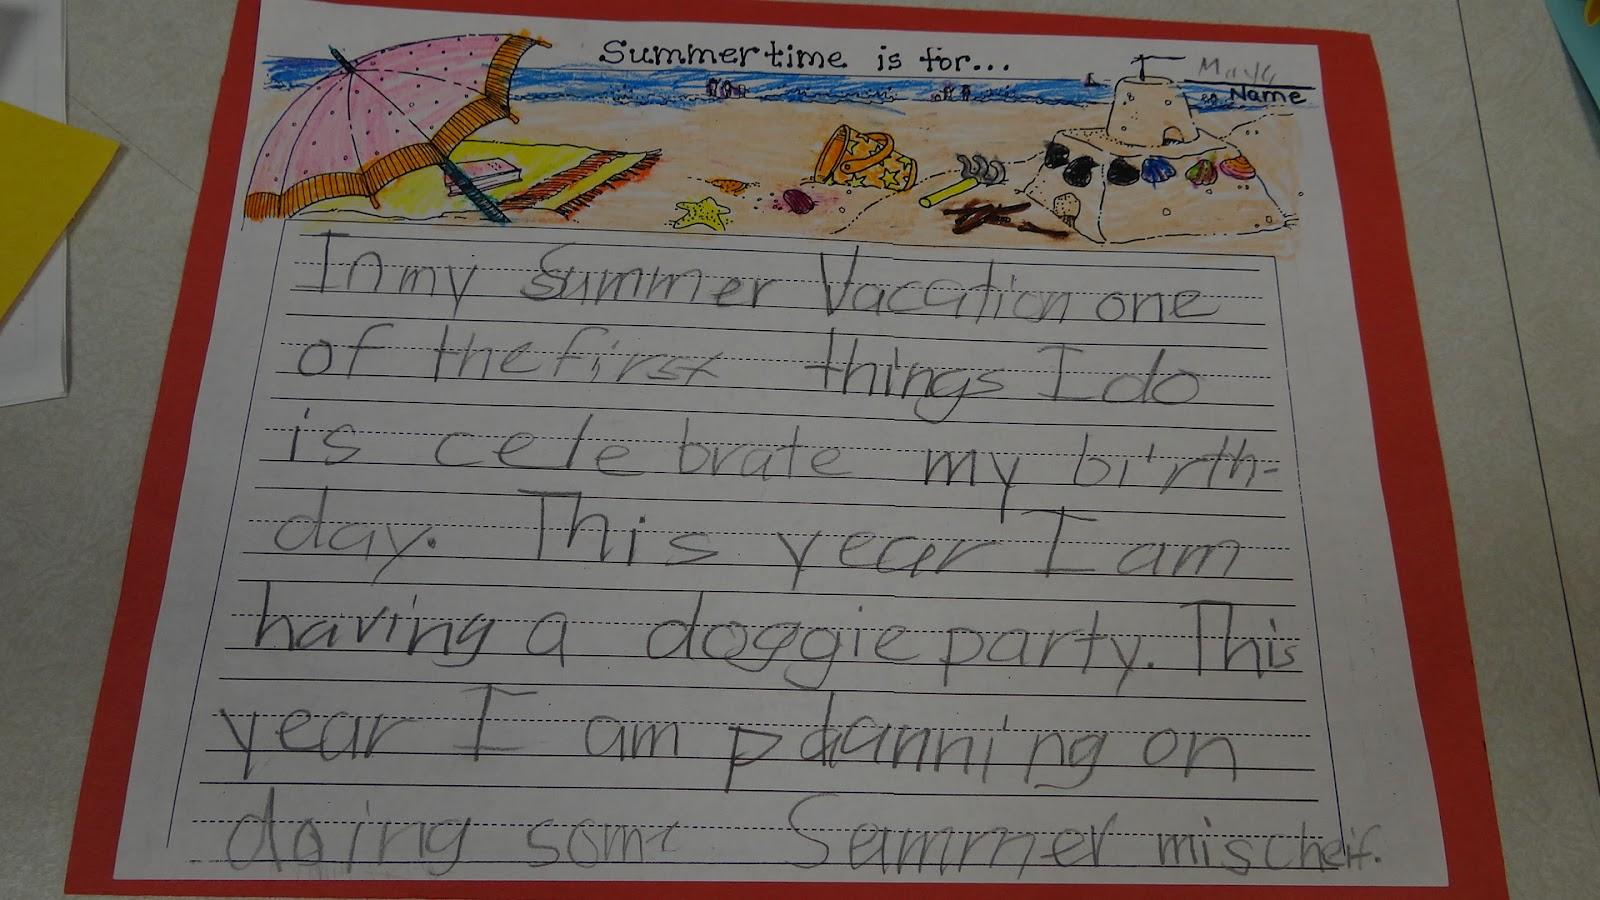 How do you write an essay on summer vacations for kids?